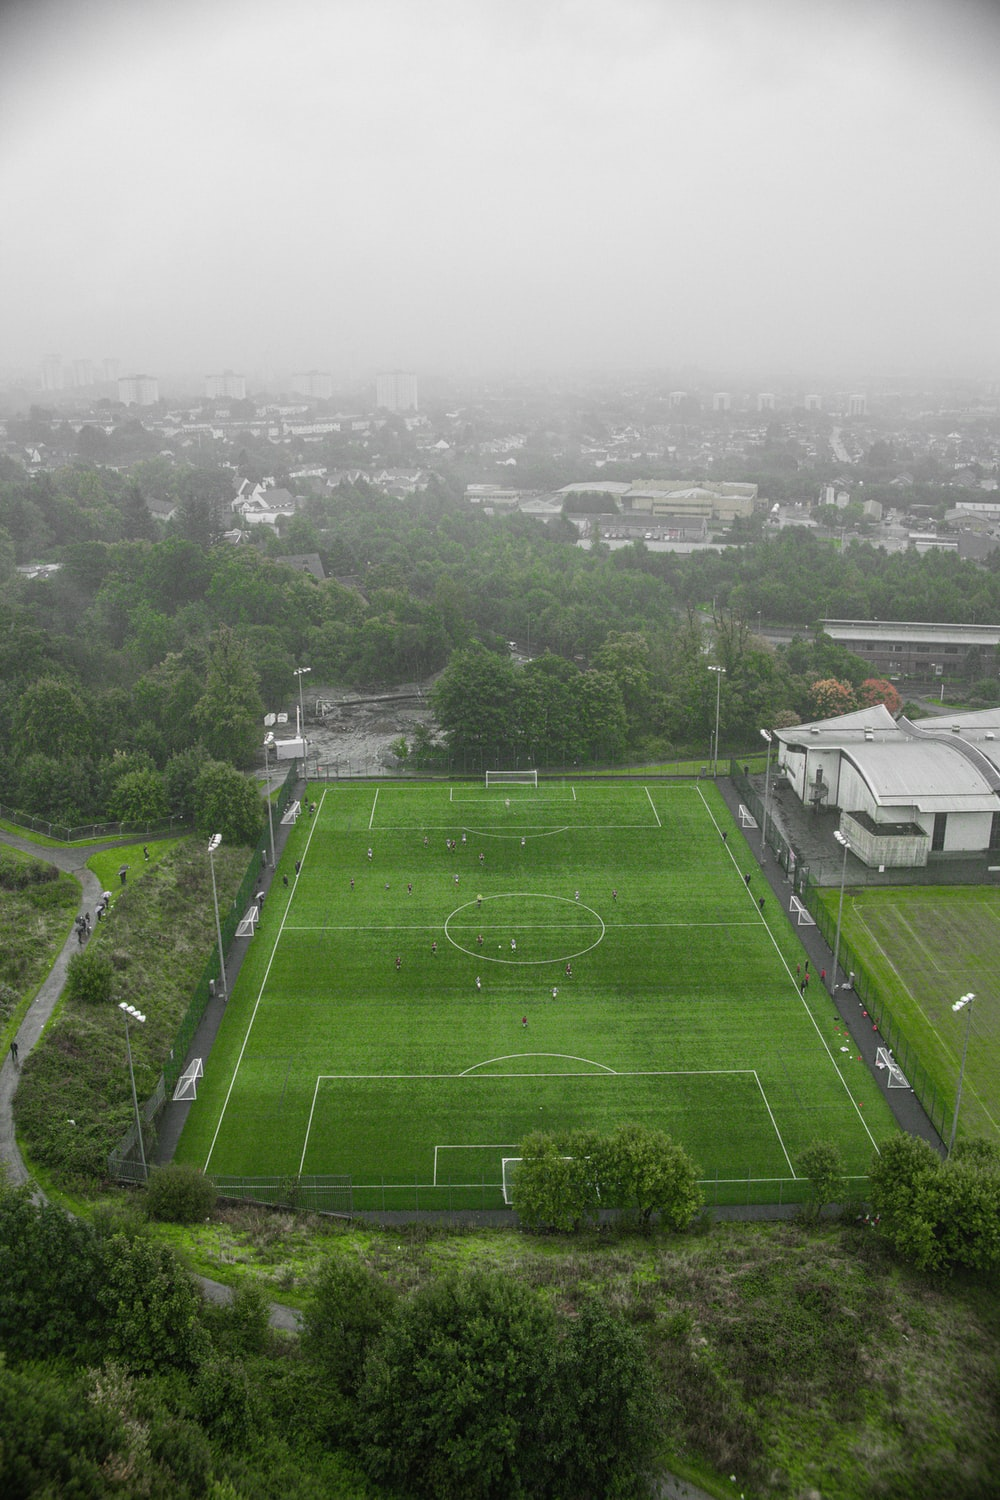 aerial view of green grass field during daytime